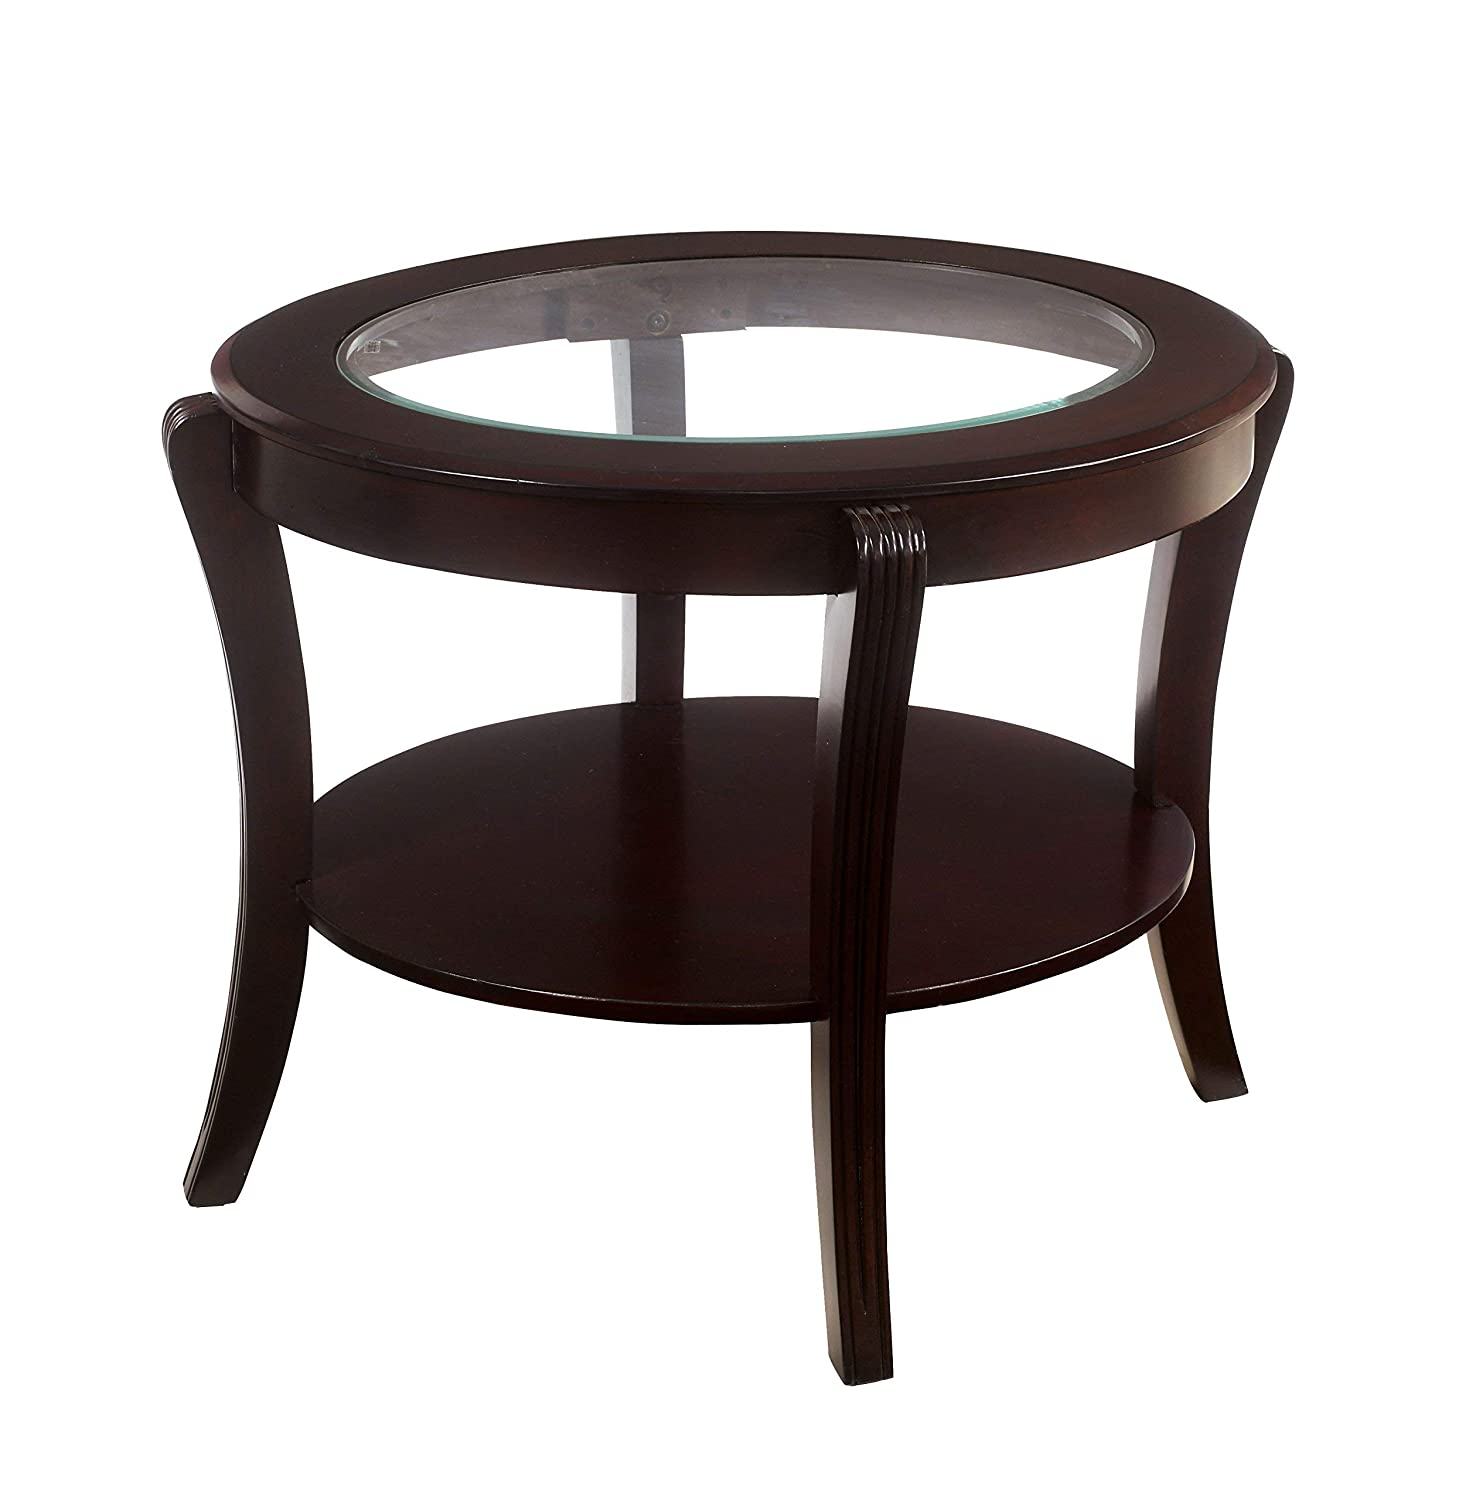 Furniture of America Astrid Contemporary Glass Top End Table, Espresso